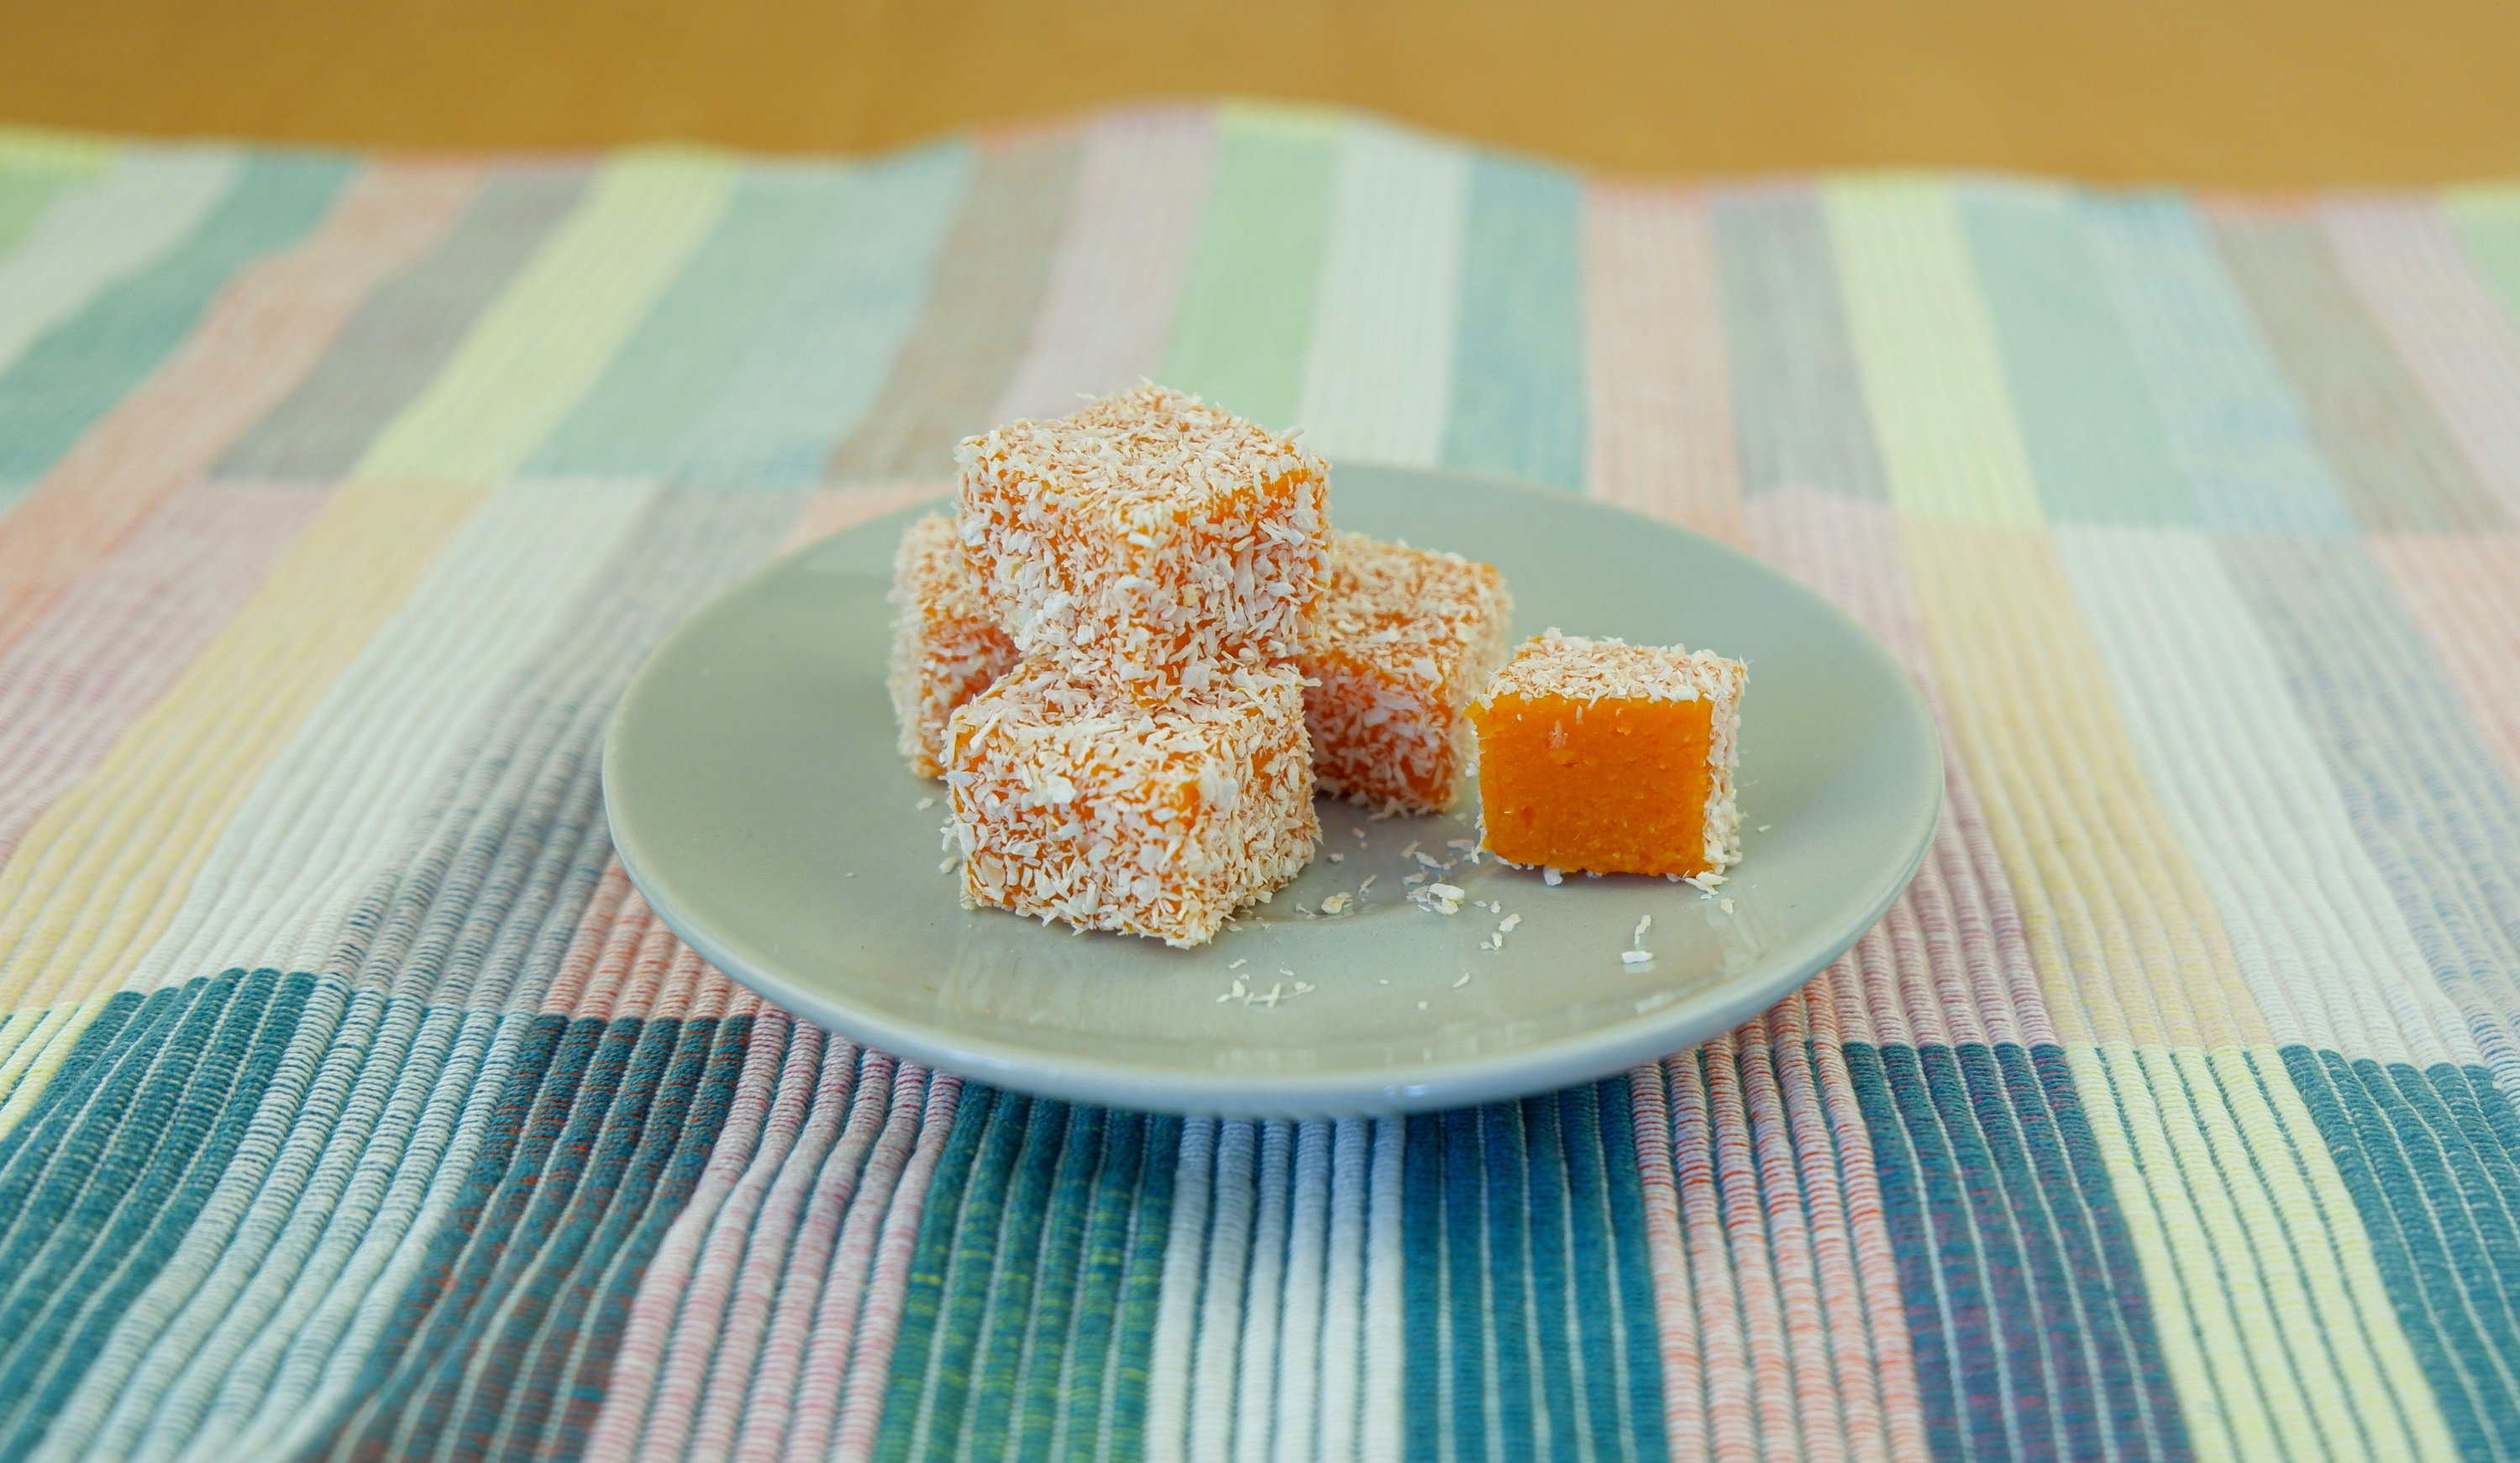 Using carrots is one of the healthiest ways of making homemade Turkish delight. (Photo by Ayla Coşkun)